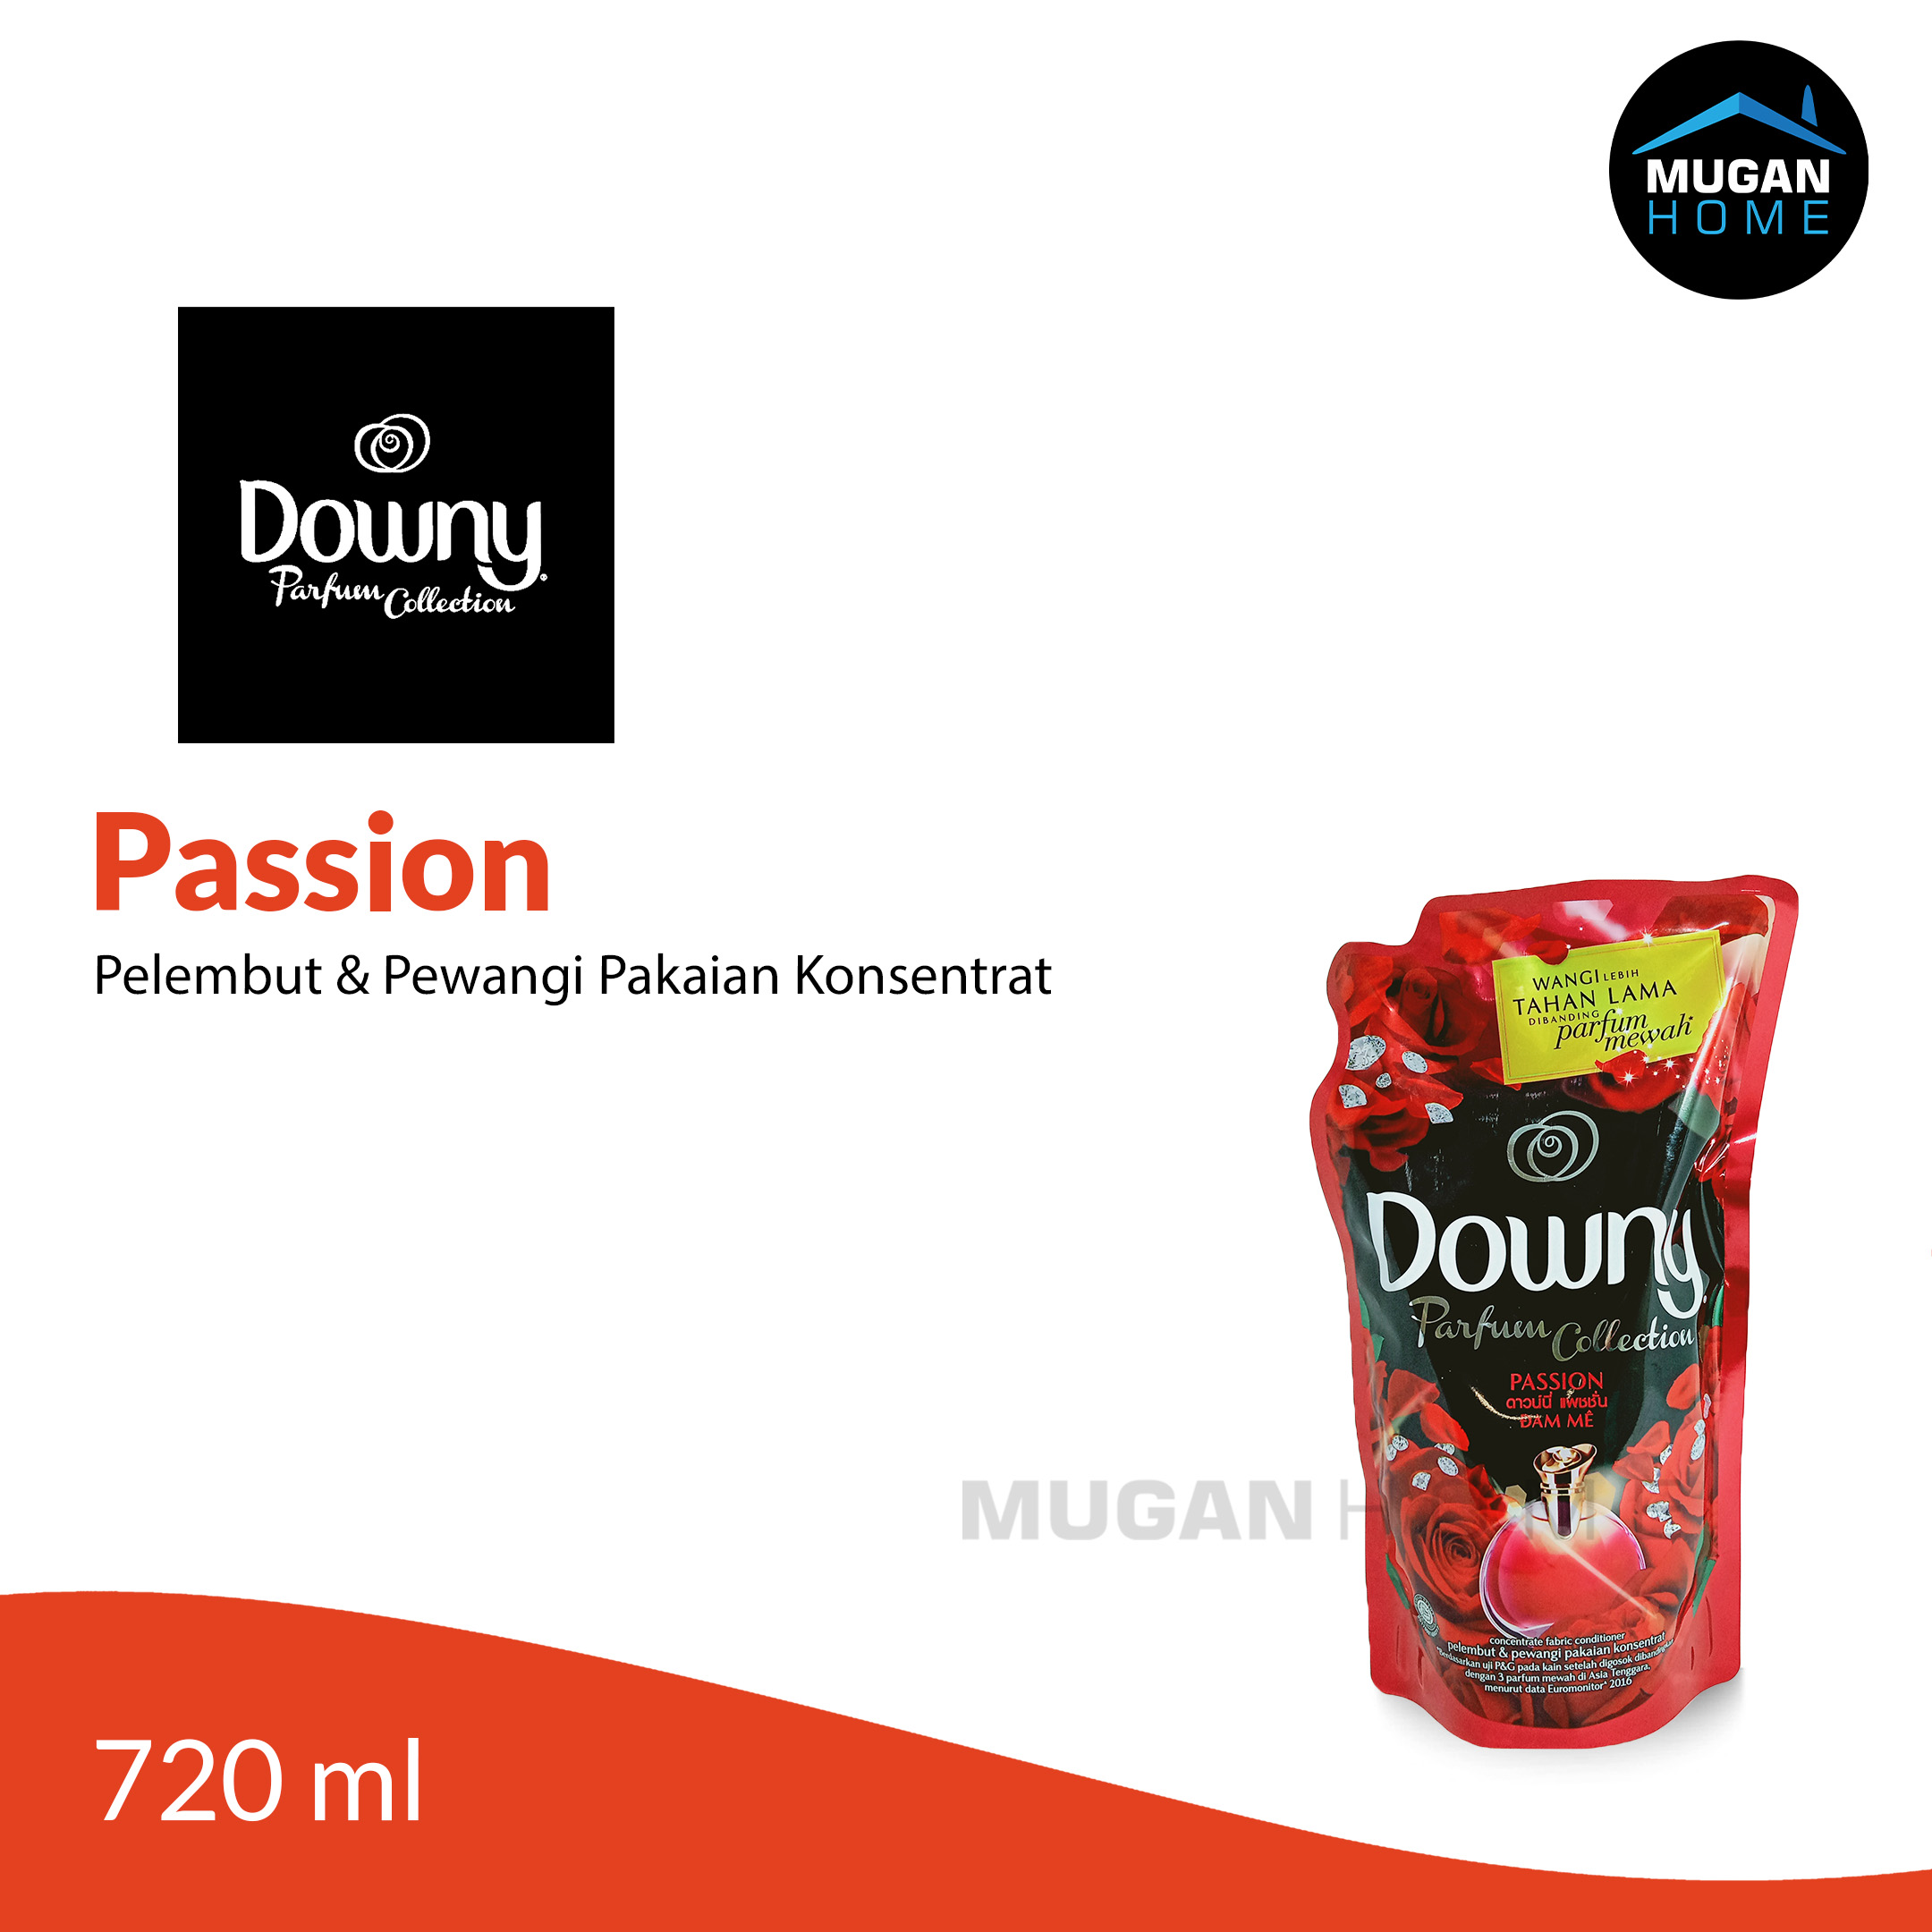 DOWNY PARFUM COLLECTION PELEMBUT PAKAIAN 720ML PASSION REFILL POUCH